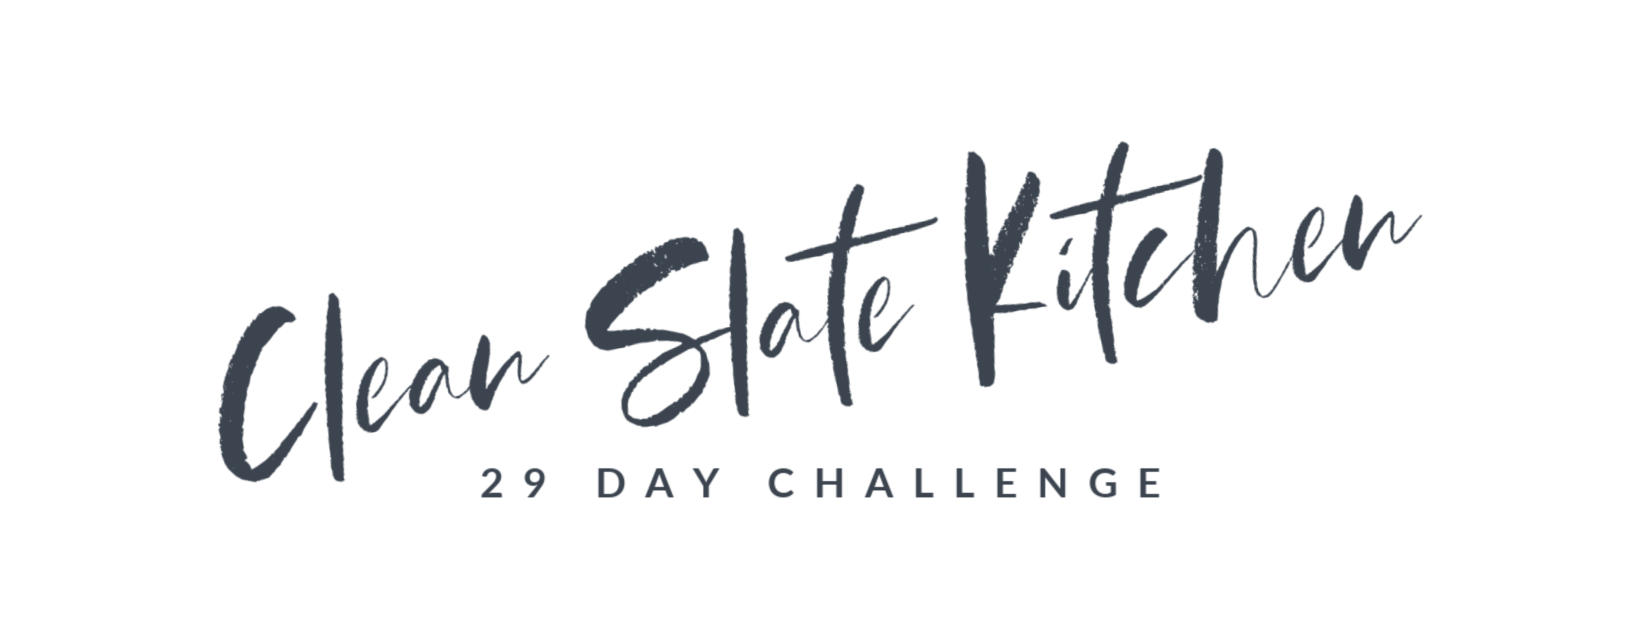 Clean Slate Kitchen Challenge copy